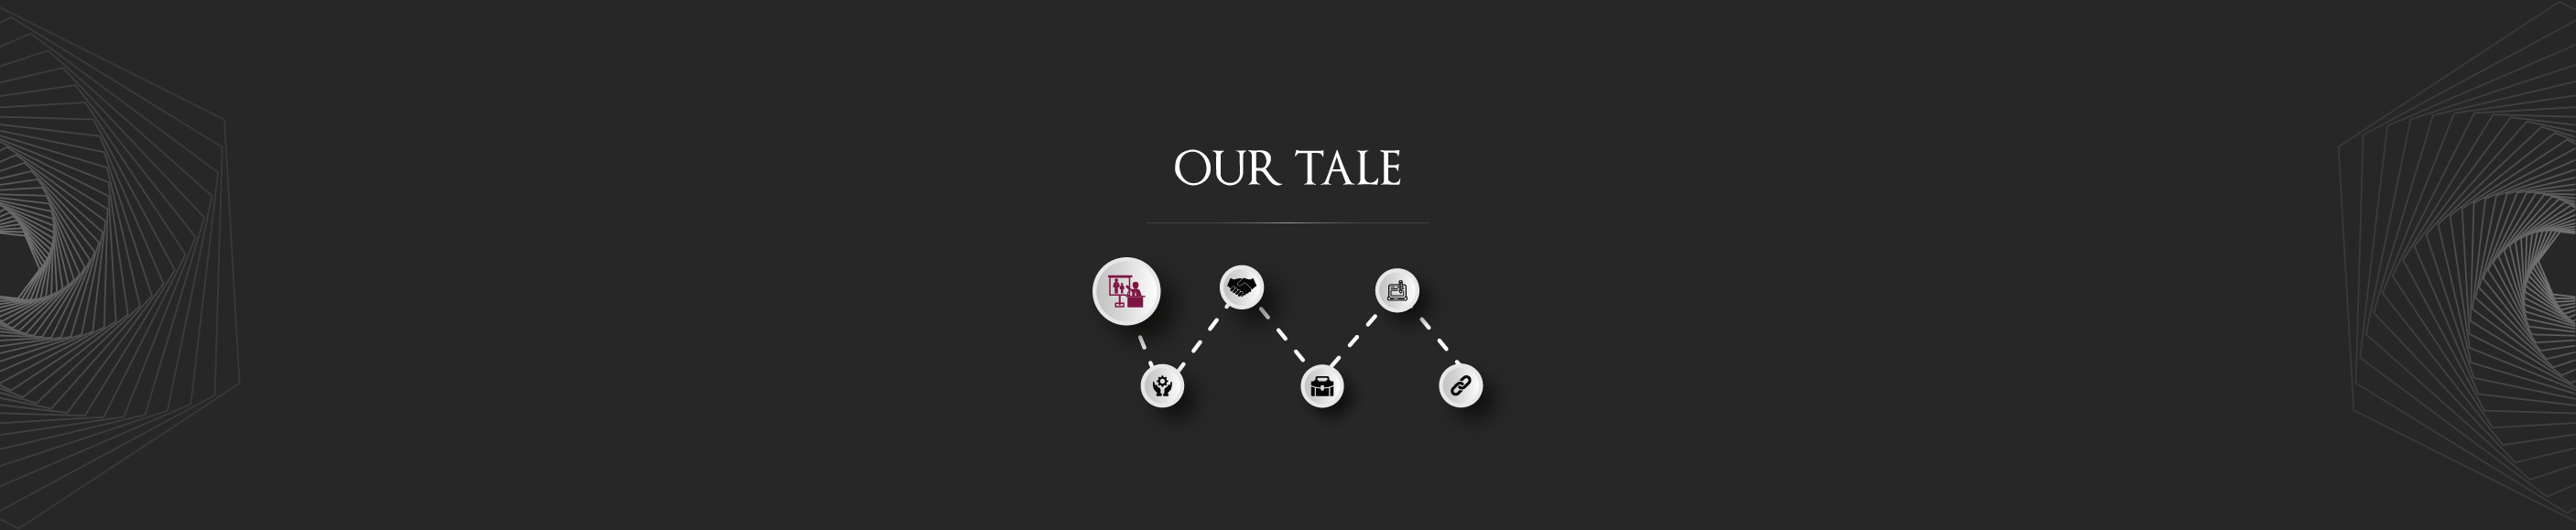 our-tale